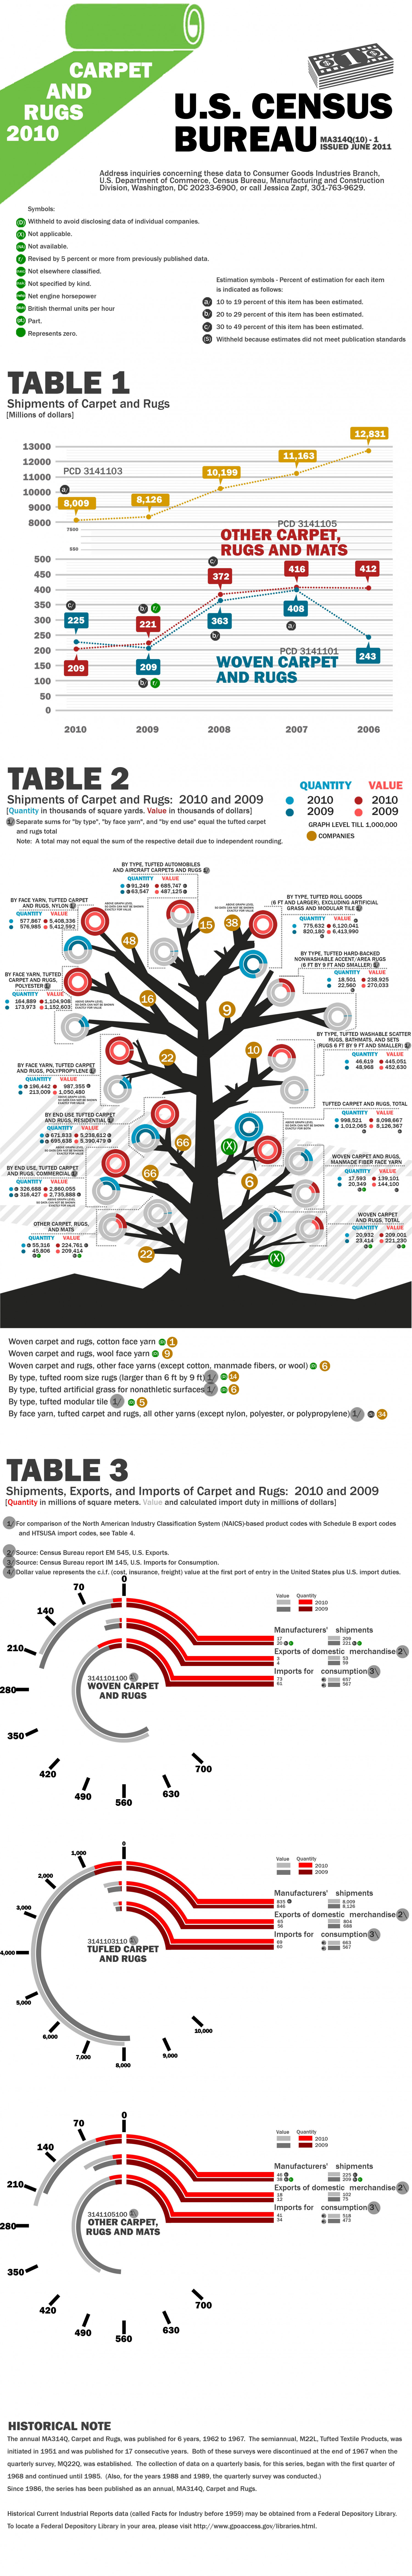 Carpet and Rugs 2010 Infographic